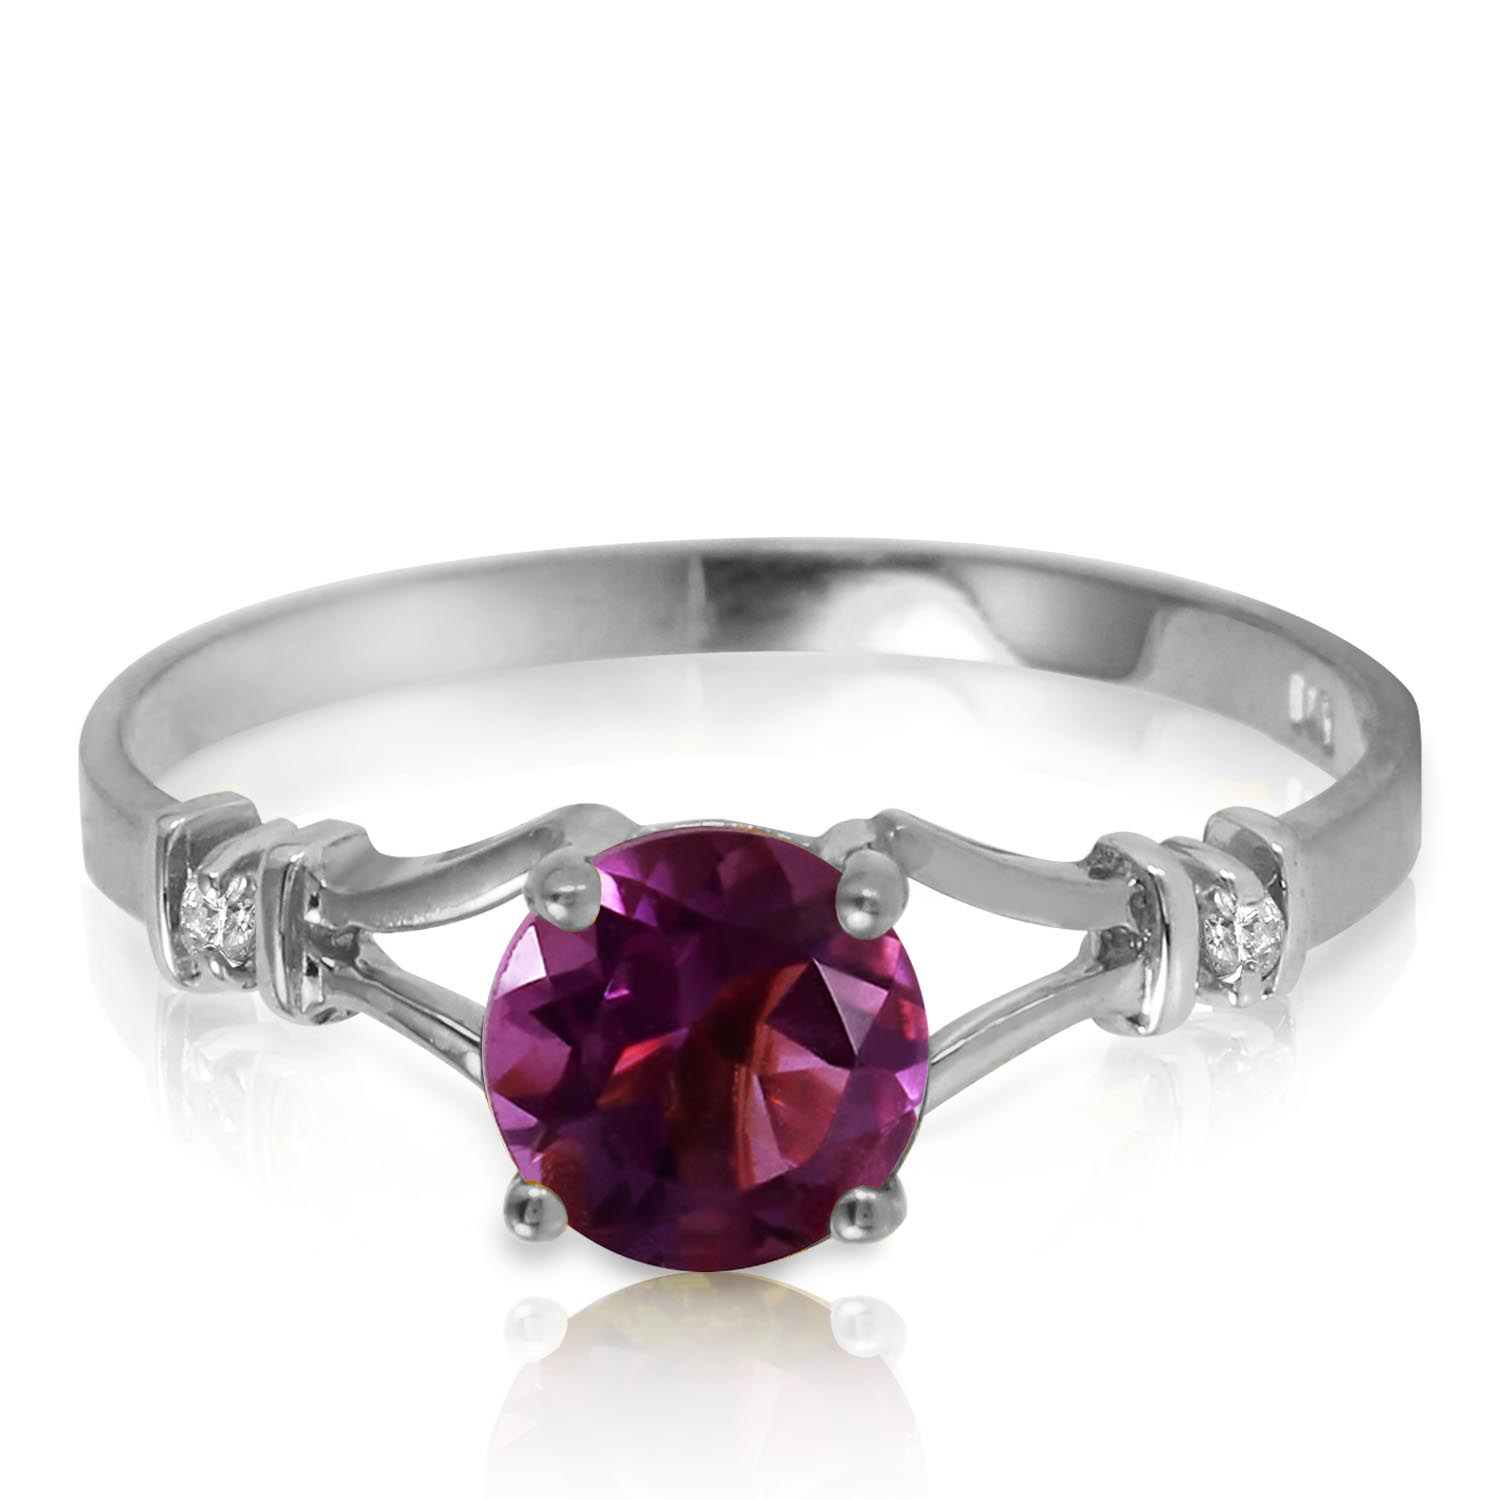 Stockists of Amethyst and Diamond Aspire Ring 0.9ct in 9ct White Gold